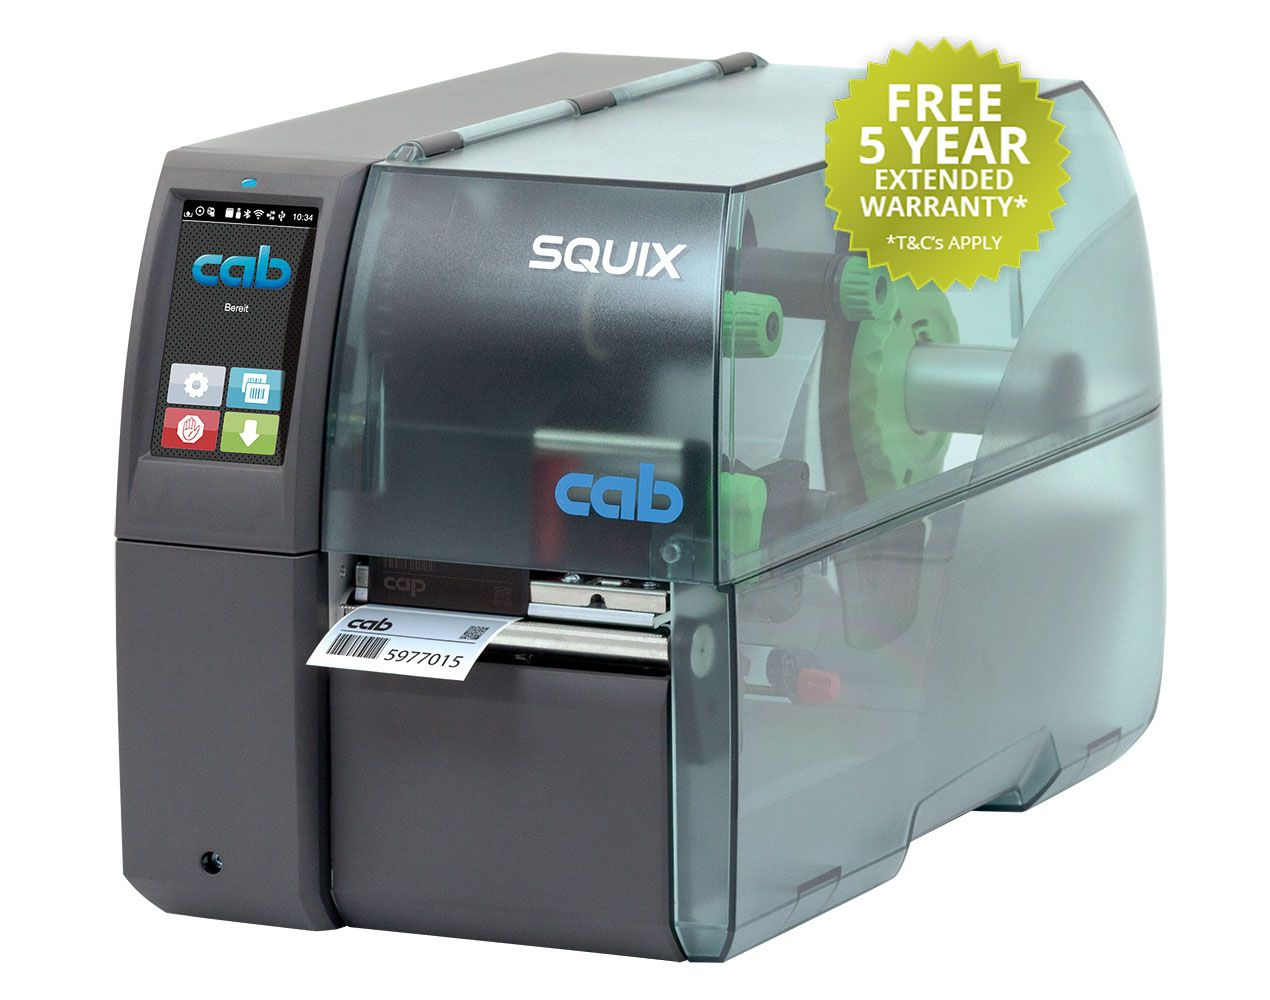 Free Onsite Warranty For New SQUIX Printers Ordered in May 2019